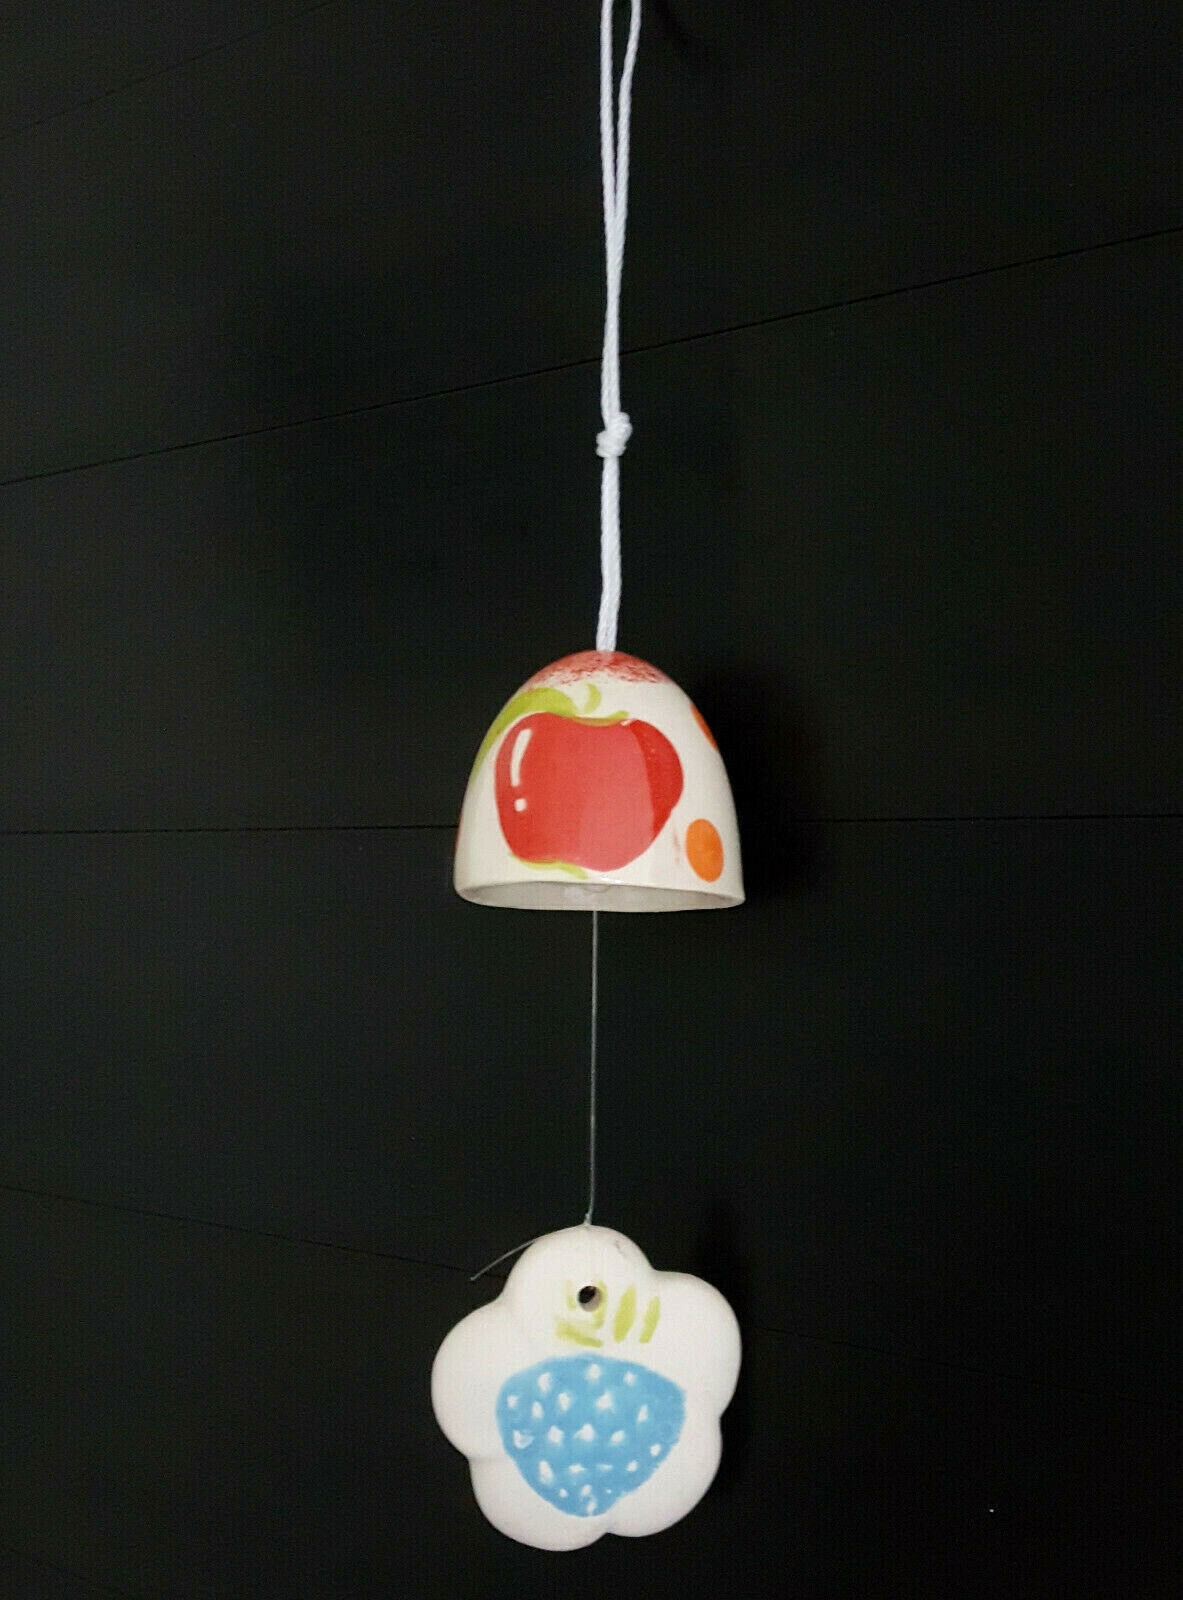 Fine Apple Bell Wind Chime Garden Lawn Decor Musical Hanging Cloud Ceramic Small